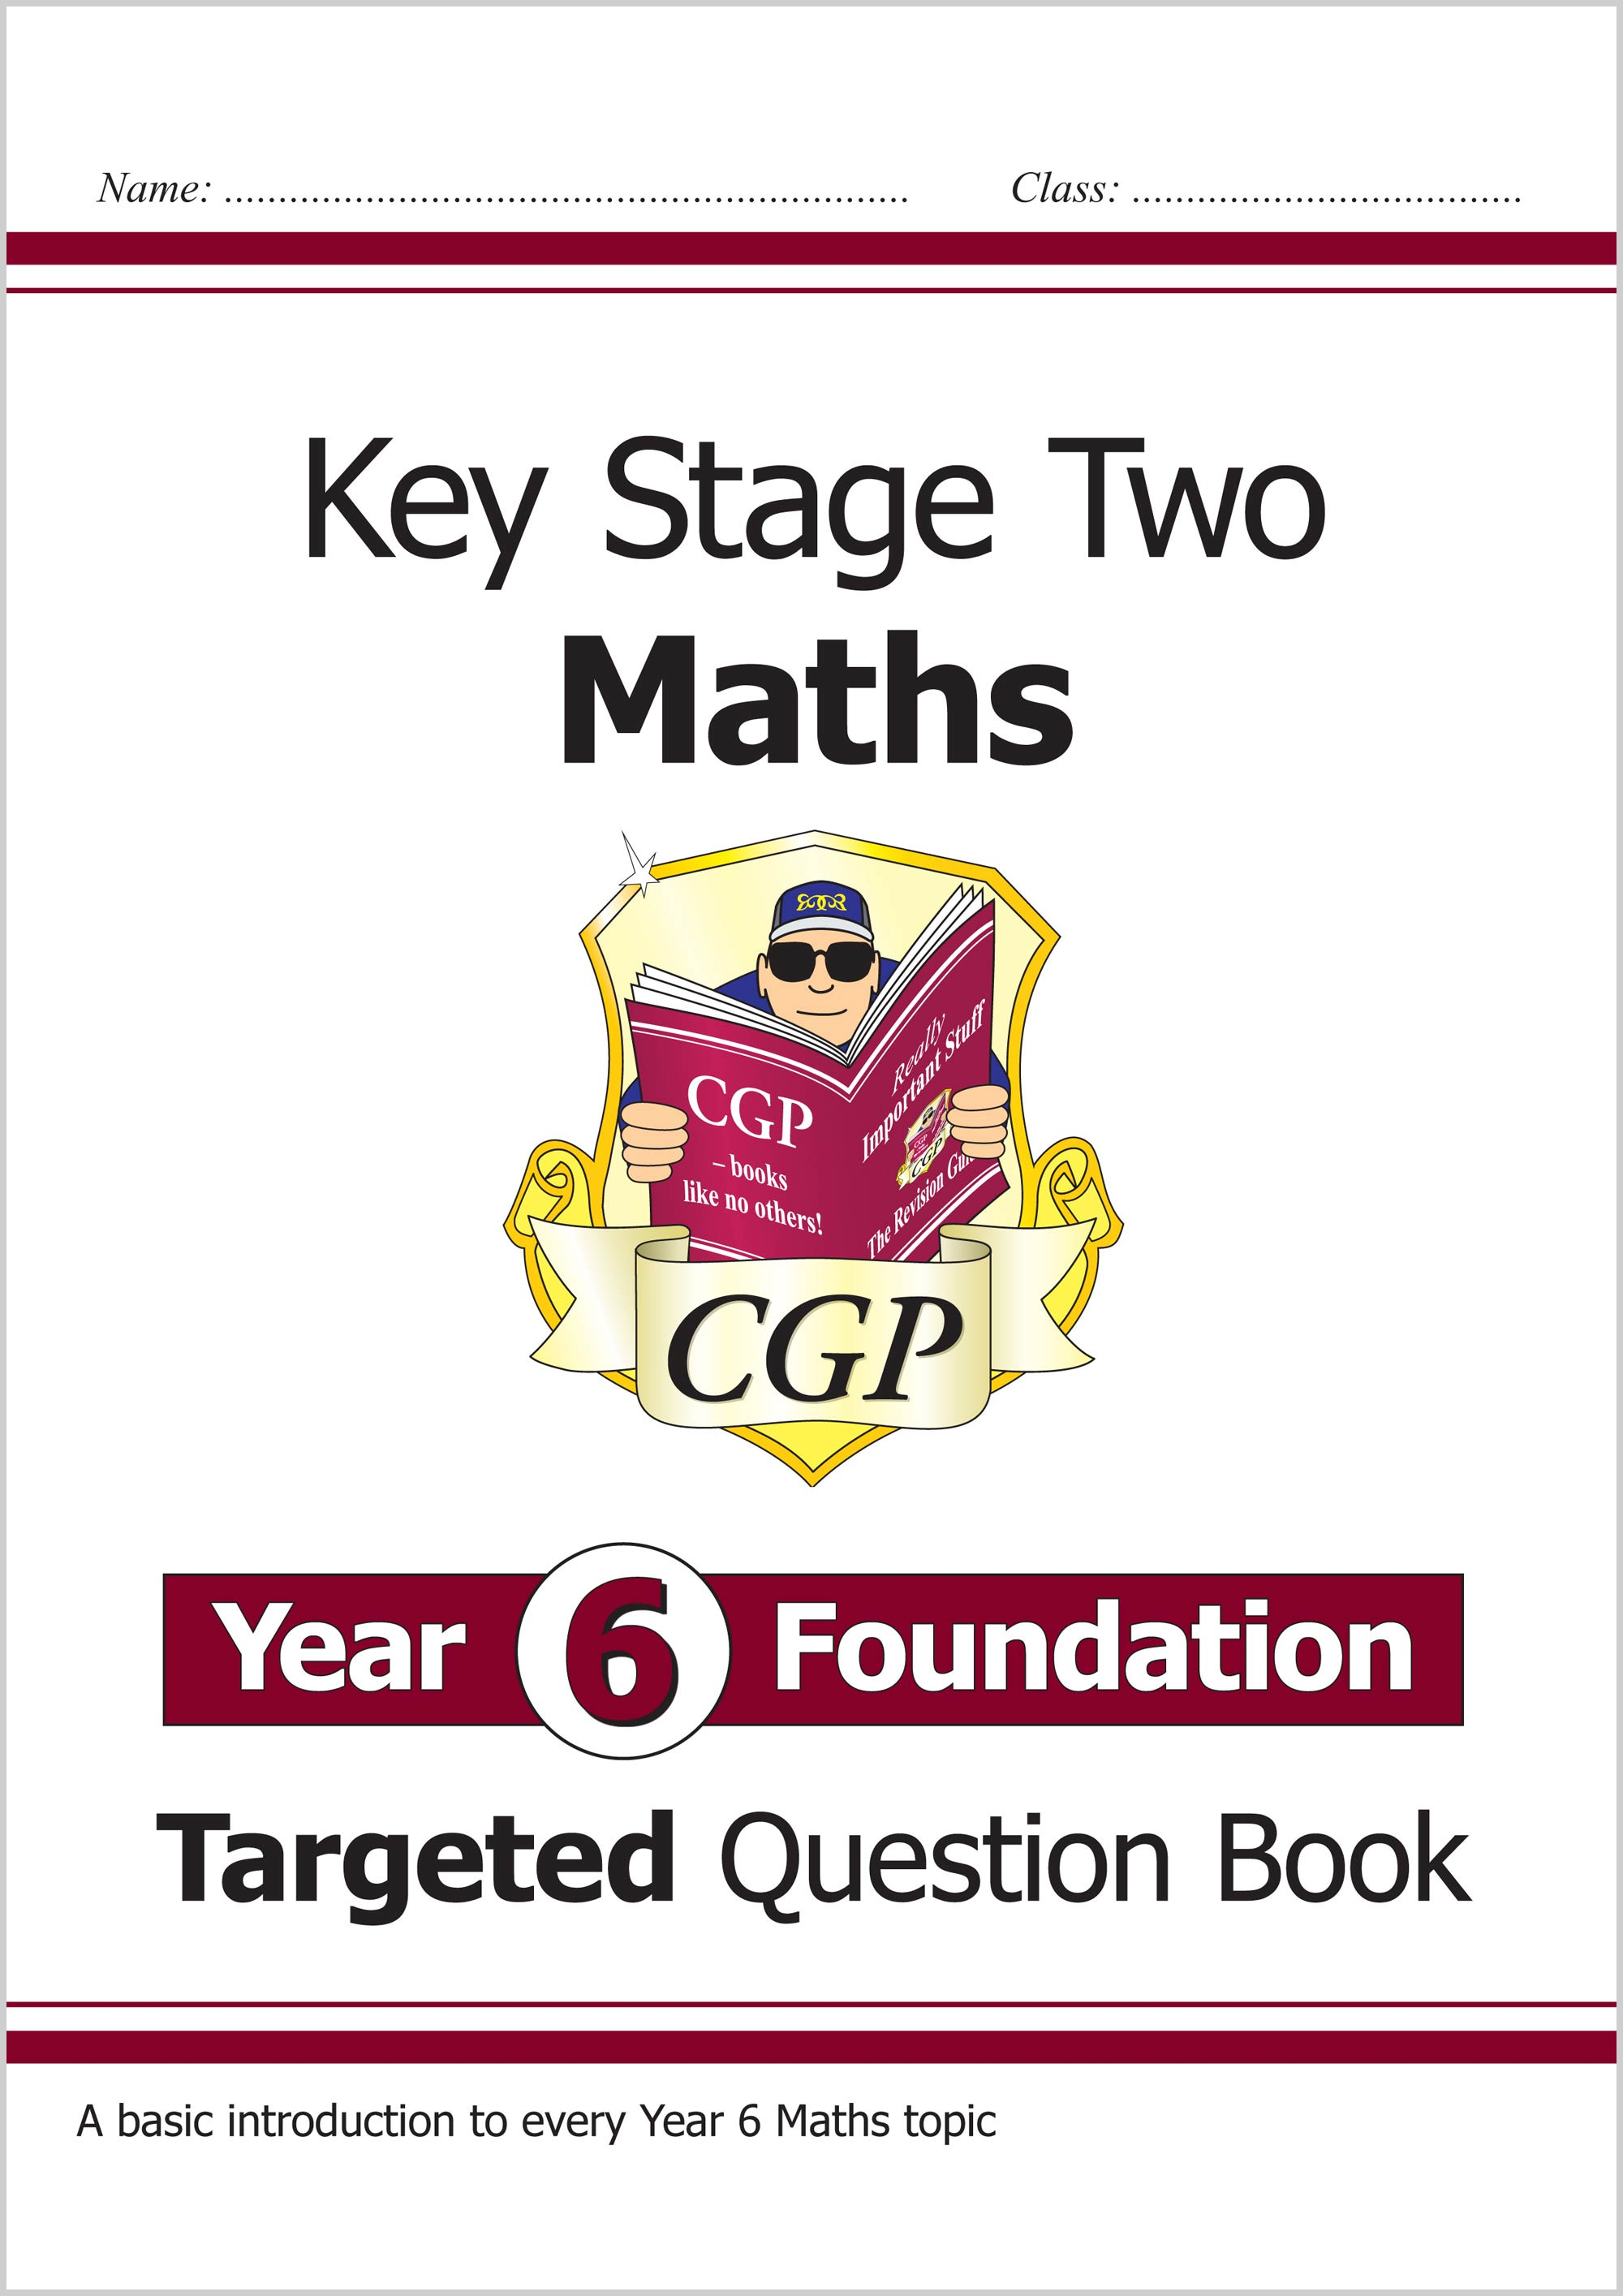 M6FQ21 - New KS2 Maths Targeted Question Book: Year 6 Foundation